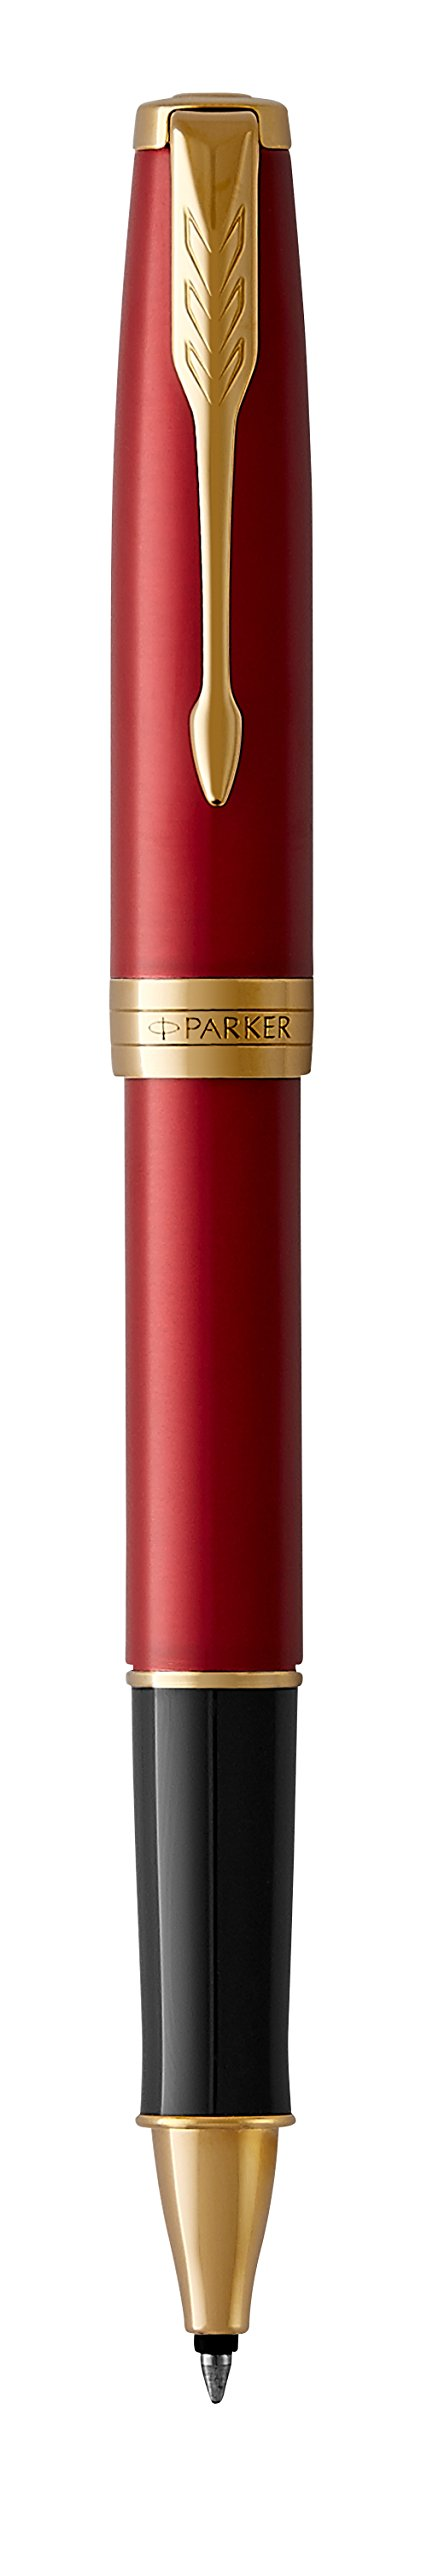 PARKER Sonnet Rollerball Pen, Red Lacquer with Gold Trim, Fine Point Black Ink (1931475) by Parker (Image #5)